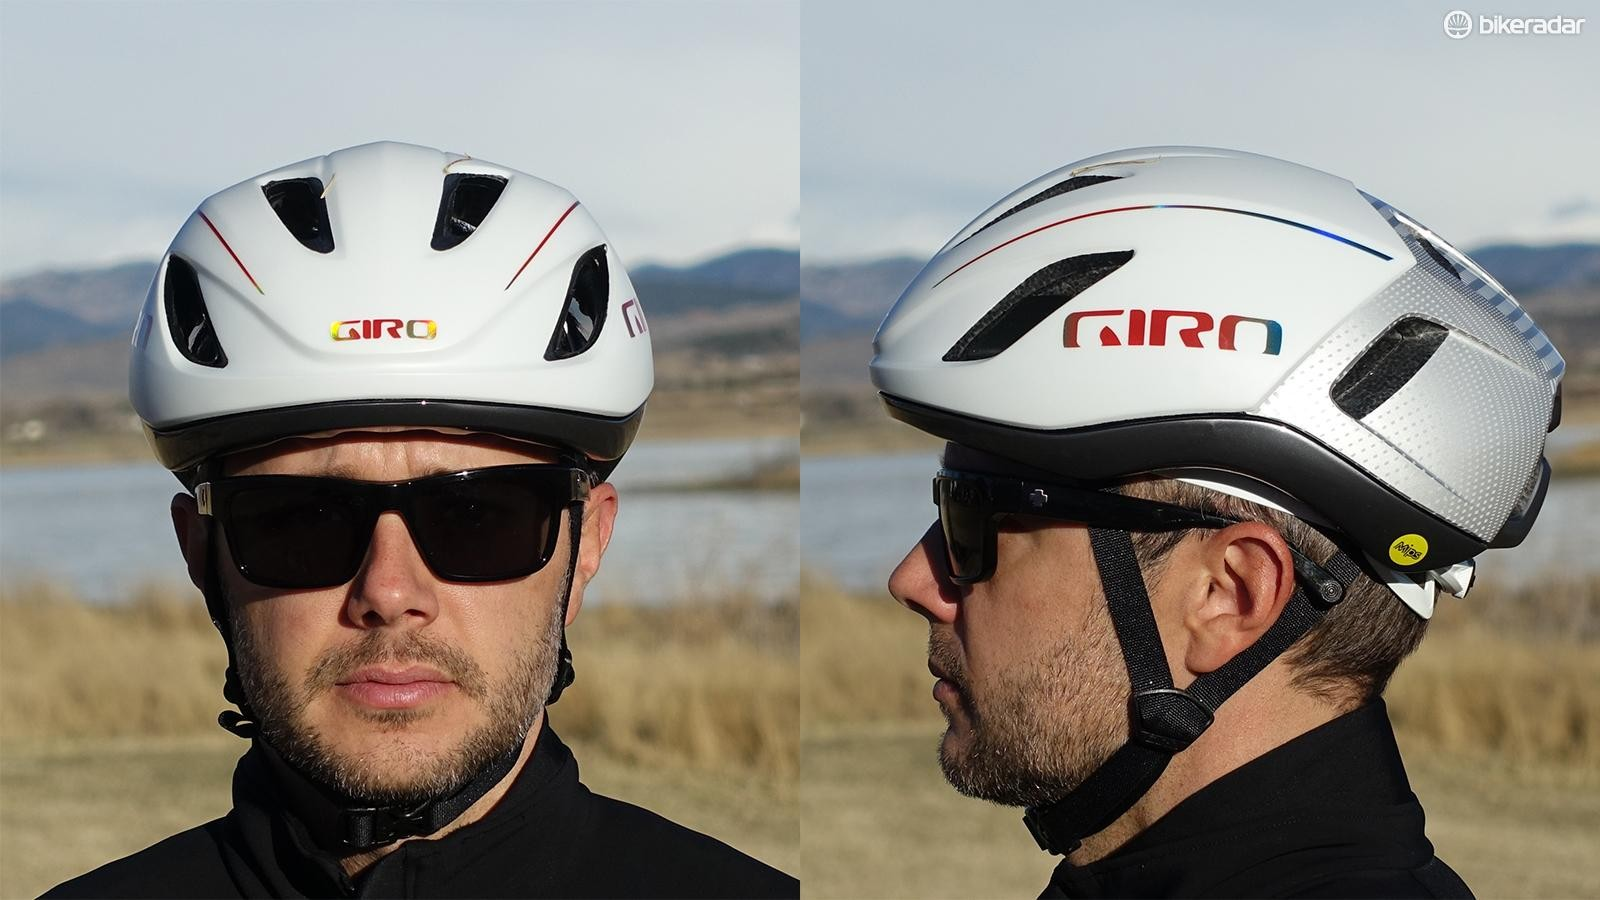 Giro's Vanquish looks wide to me from the front, but it's a quality lid